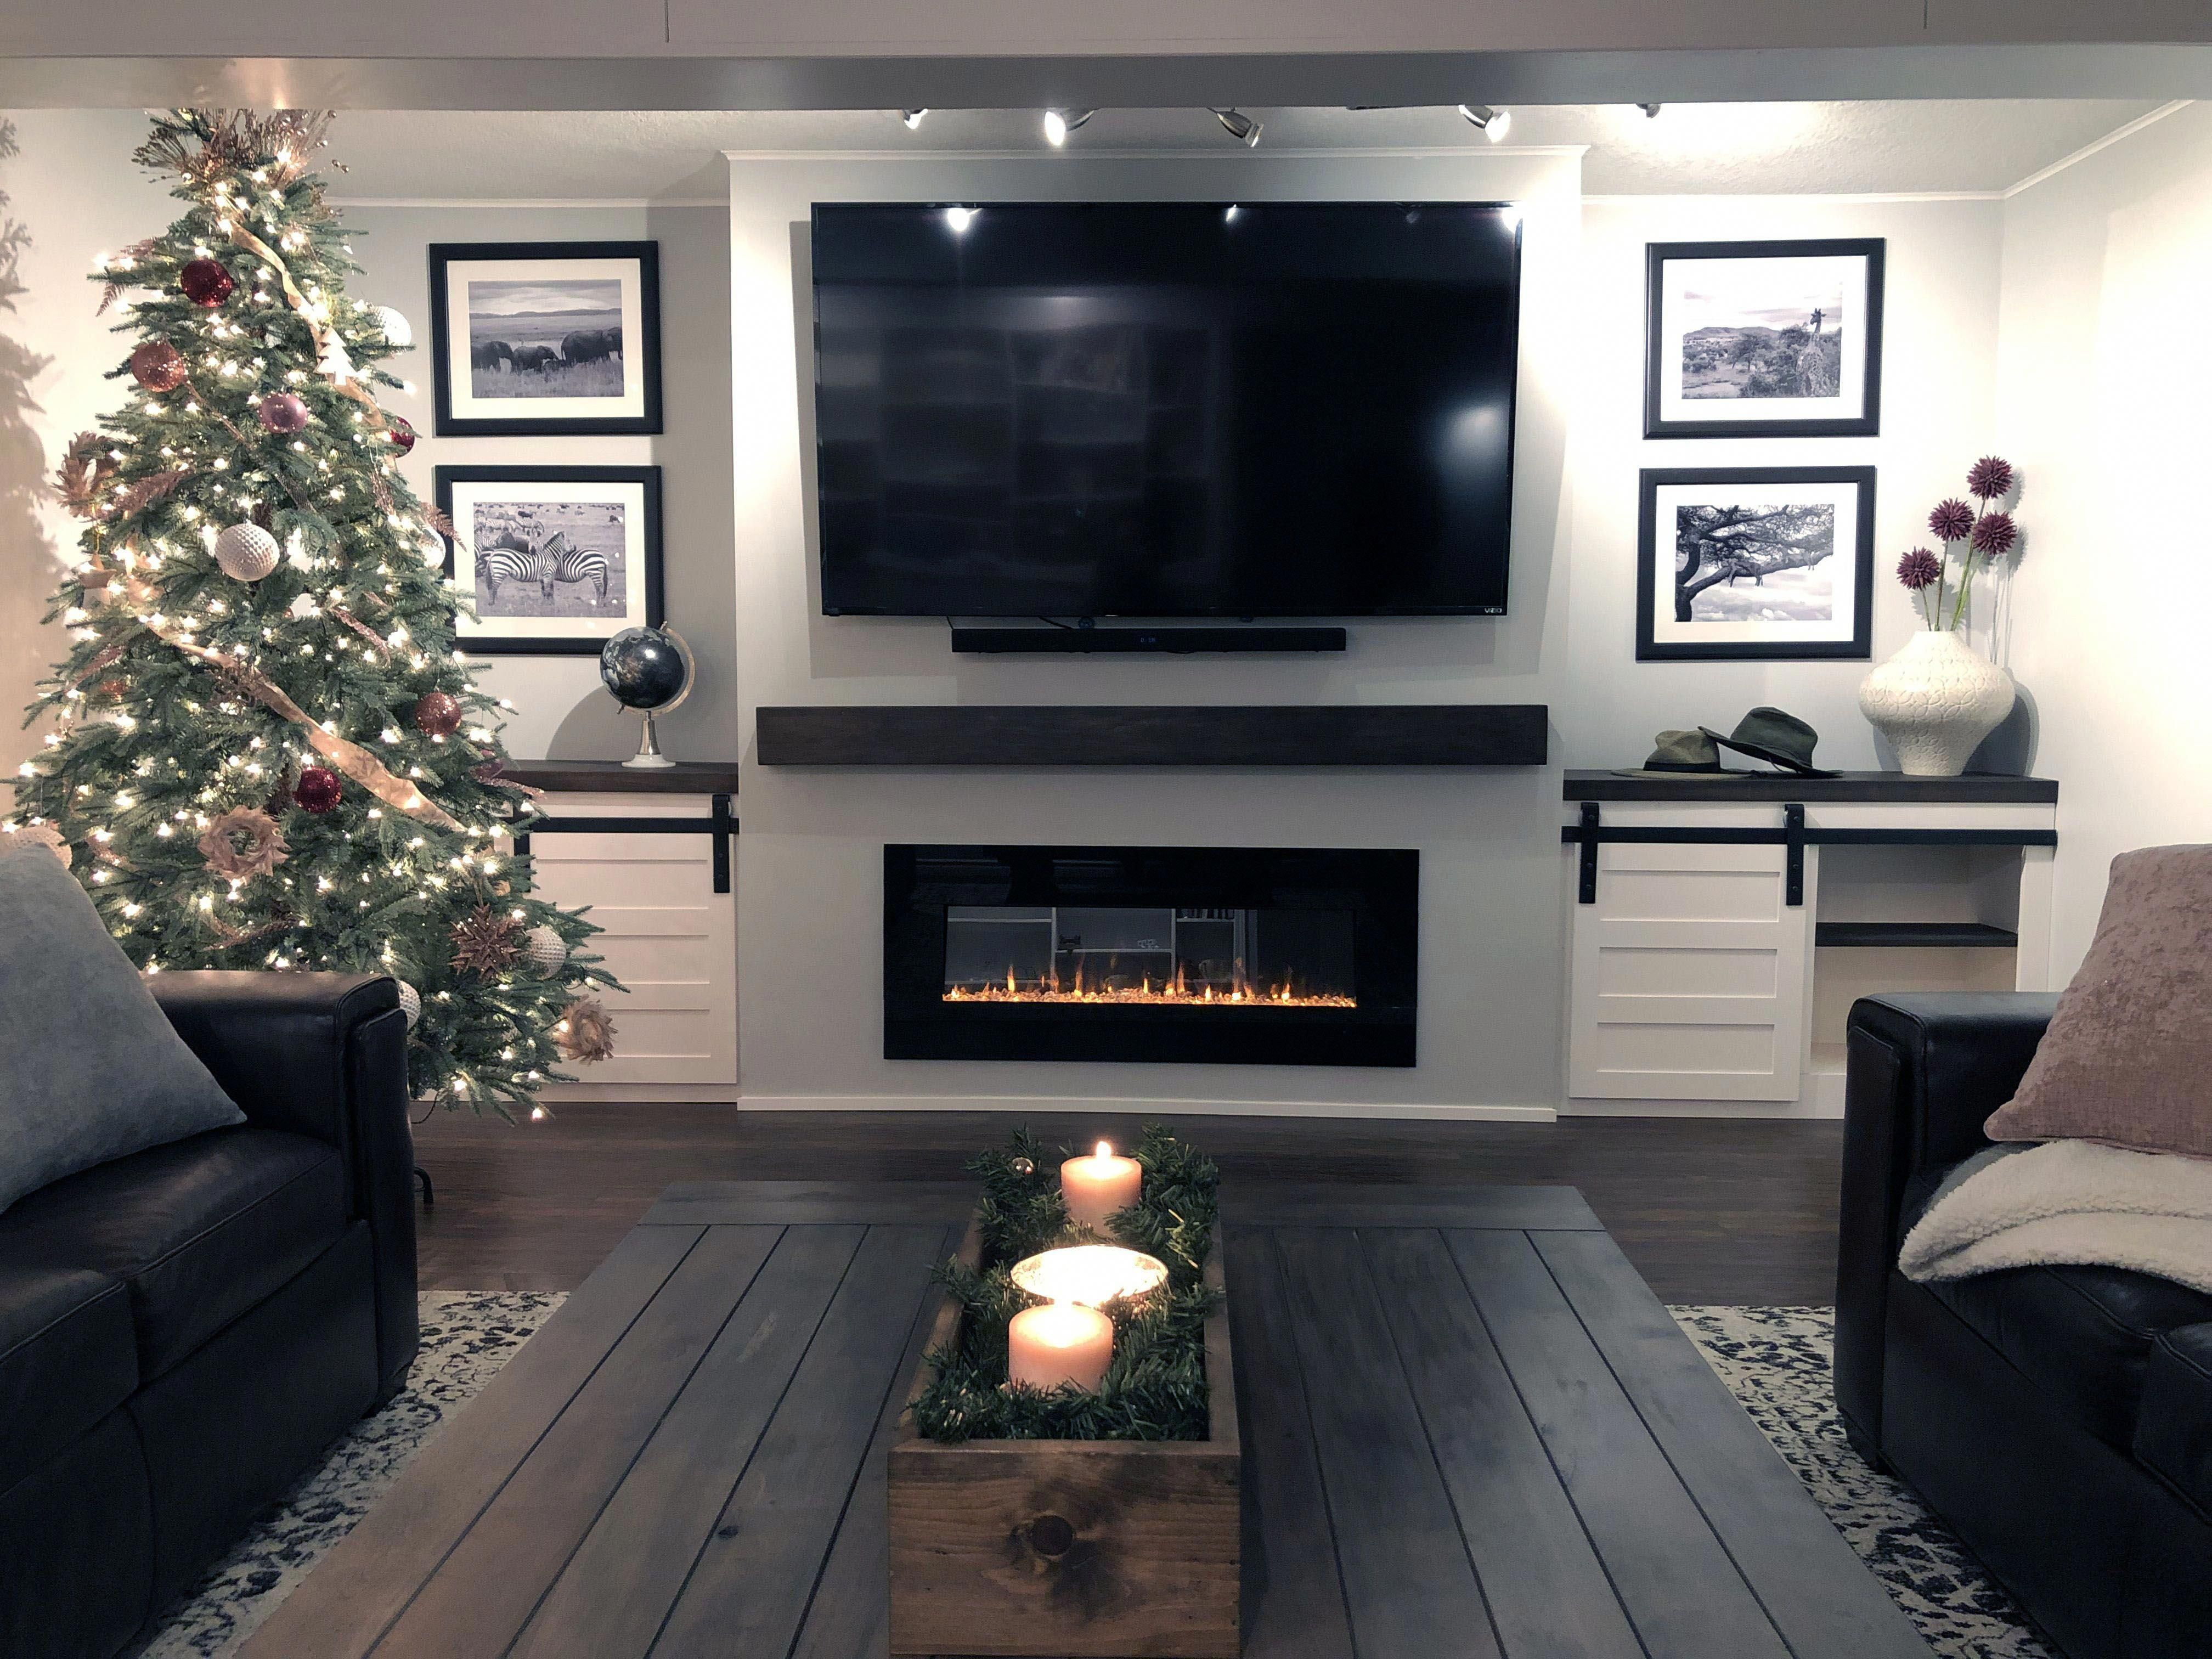 This Particular Photo Is A Very Inspiring And Awesome Idea Basementcarpet Basement Living Rooms Living Room With Fireplace Basement Fireplace